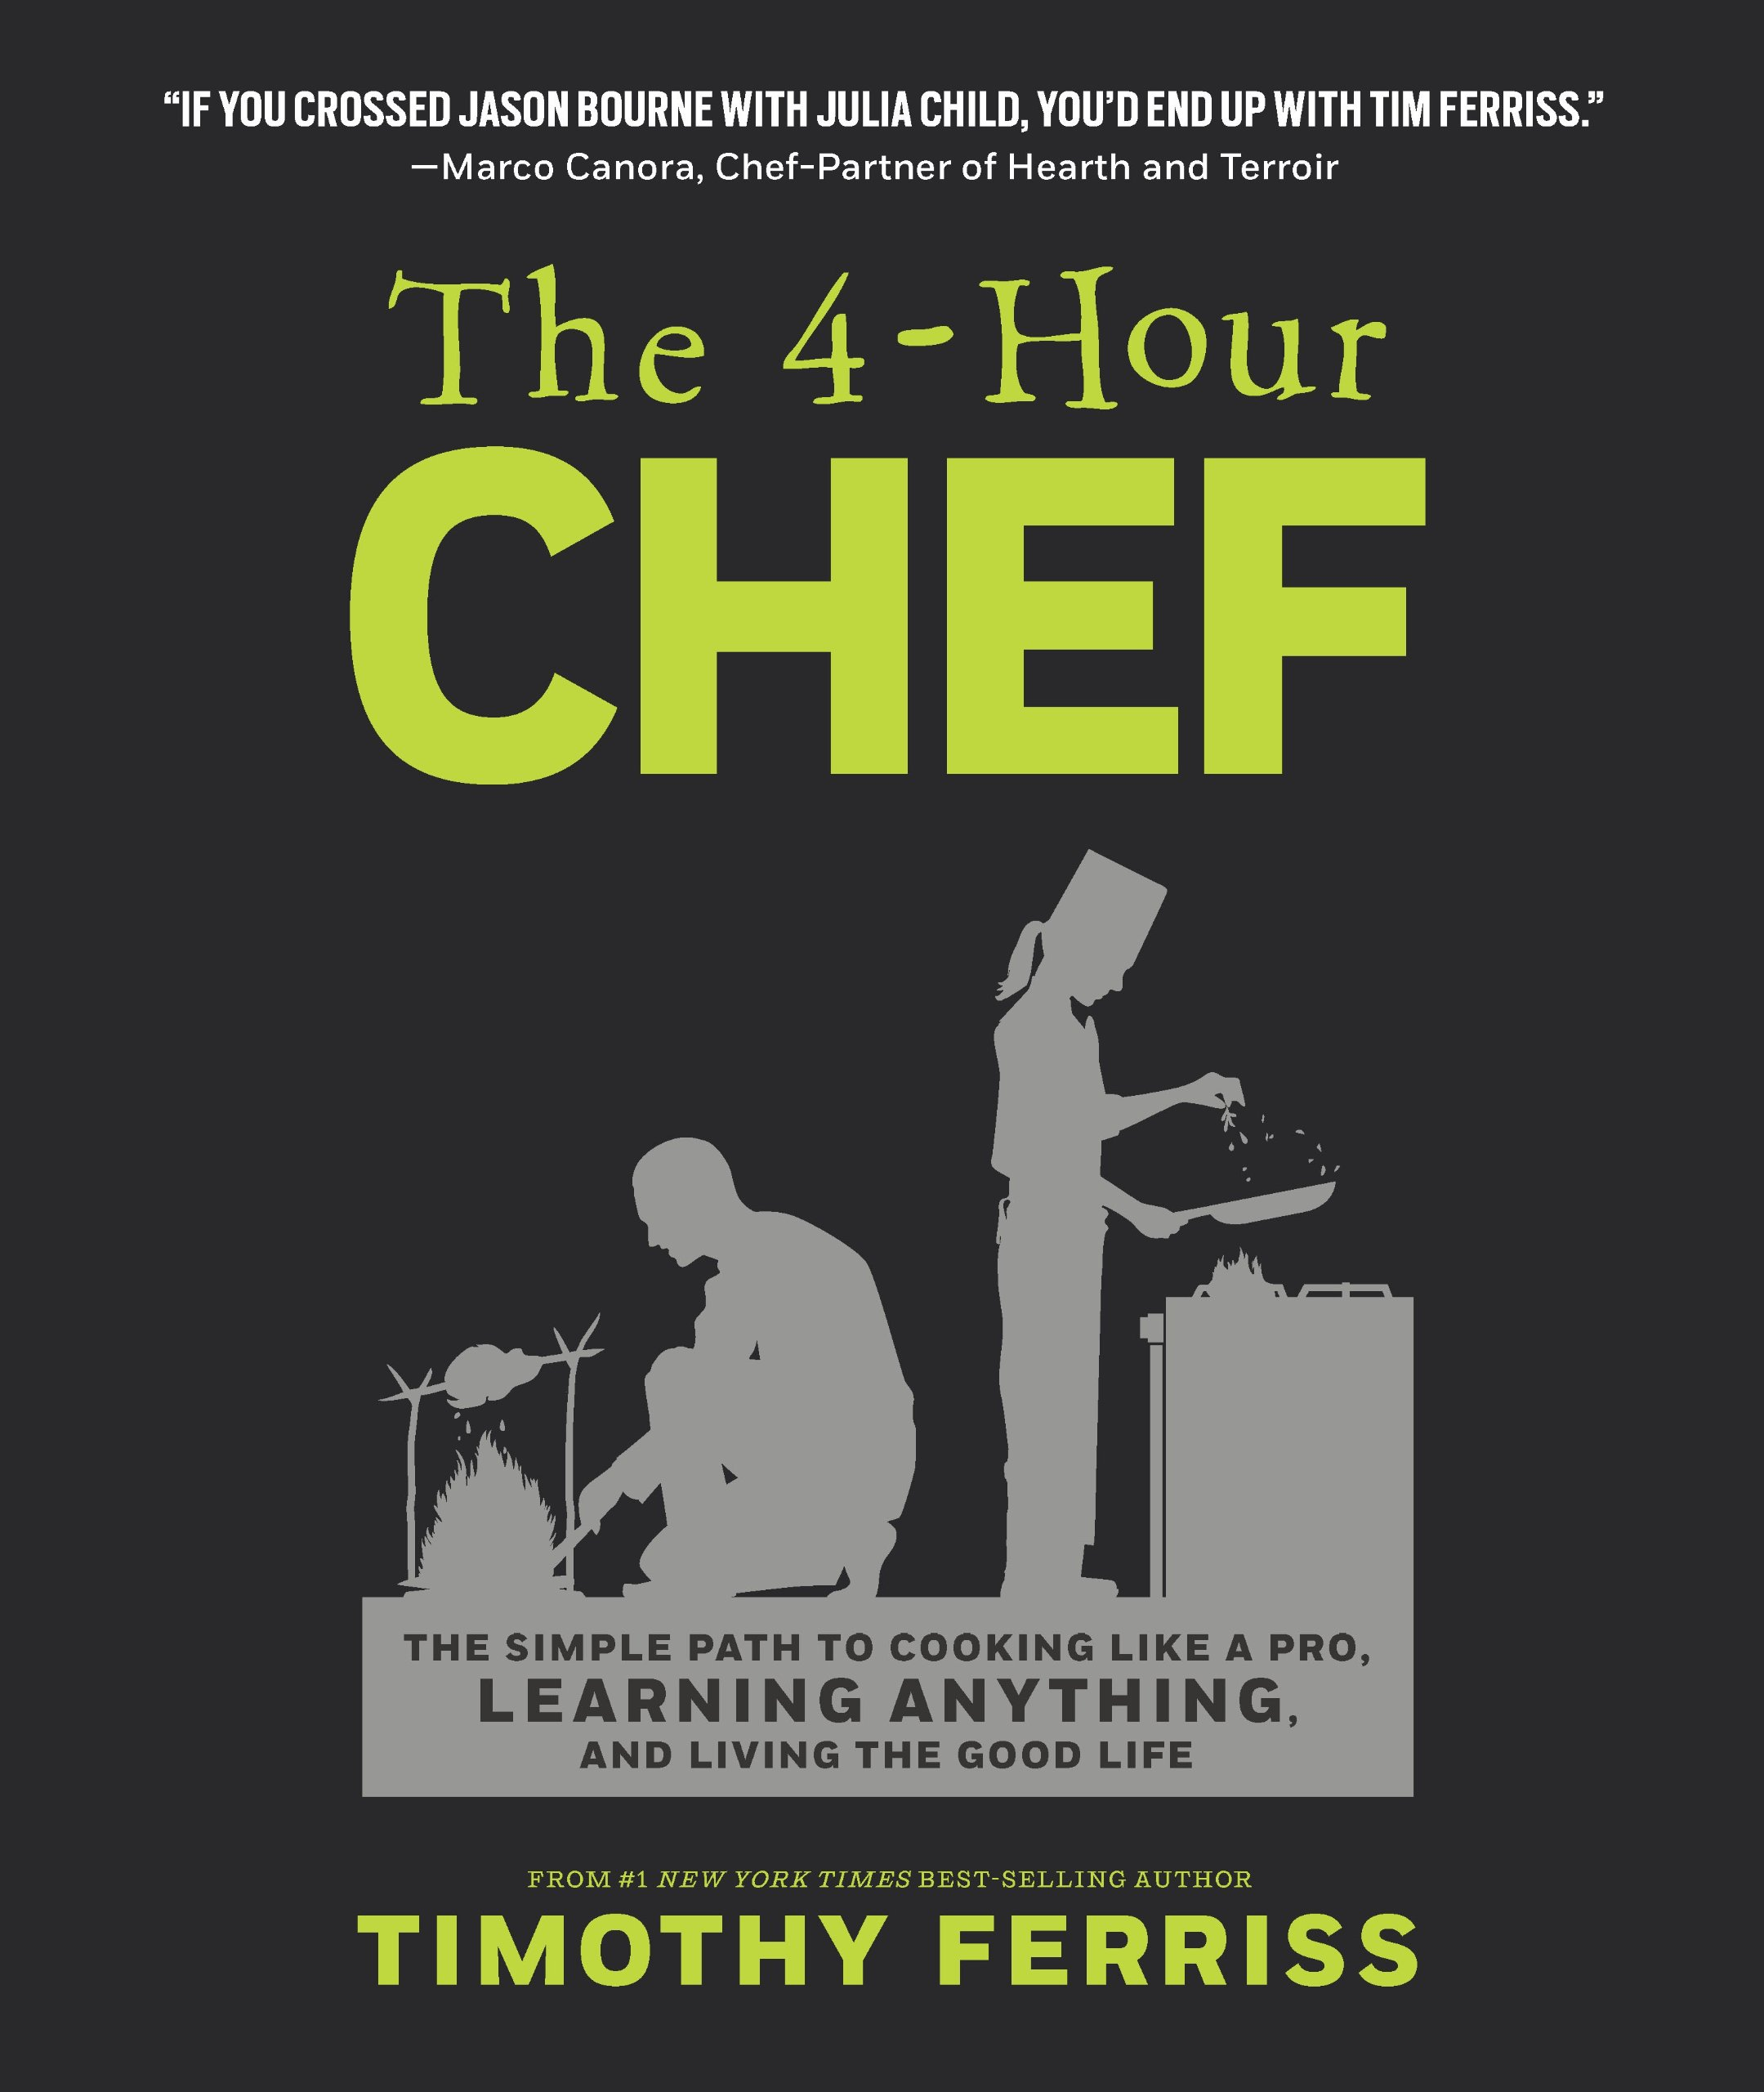 The 4-Hour Chef: Tim Ferriss Crazy, Brilliant Cookbook